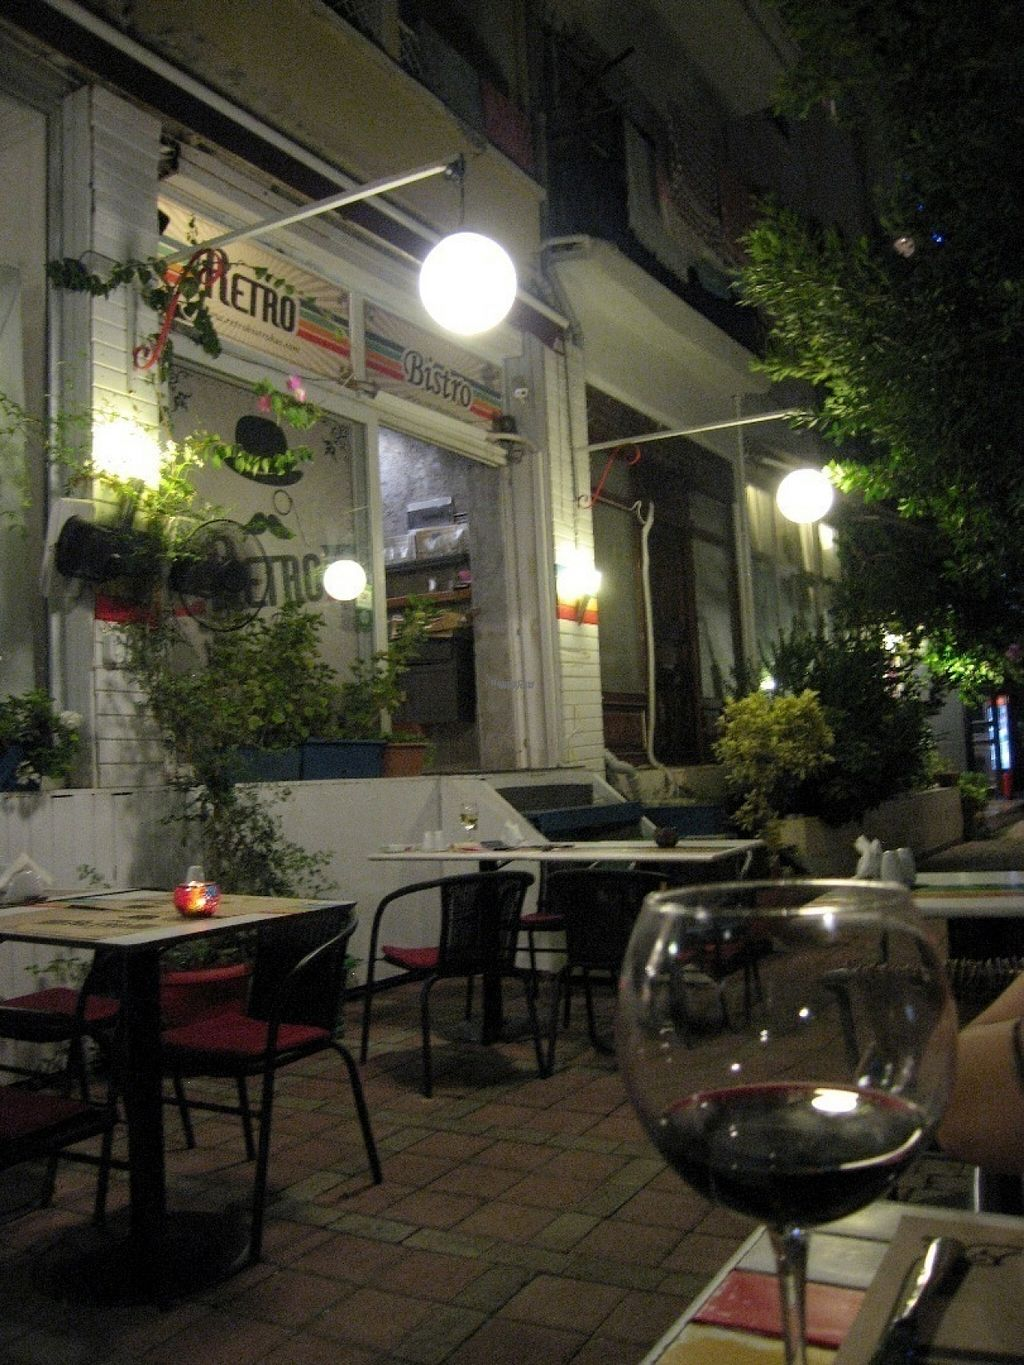 "Photo of Retro Bistro Kas  by <a href=""/members/profile/SG213"">SG213</a> <br/>Seating area at the back <br/> August 22, 2016  - <a href='/contact/abuse/image/57310/170729'>Report</a>"